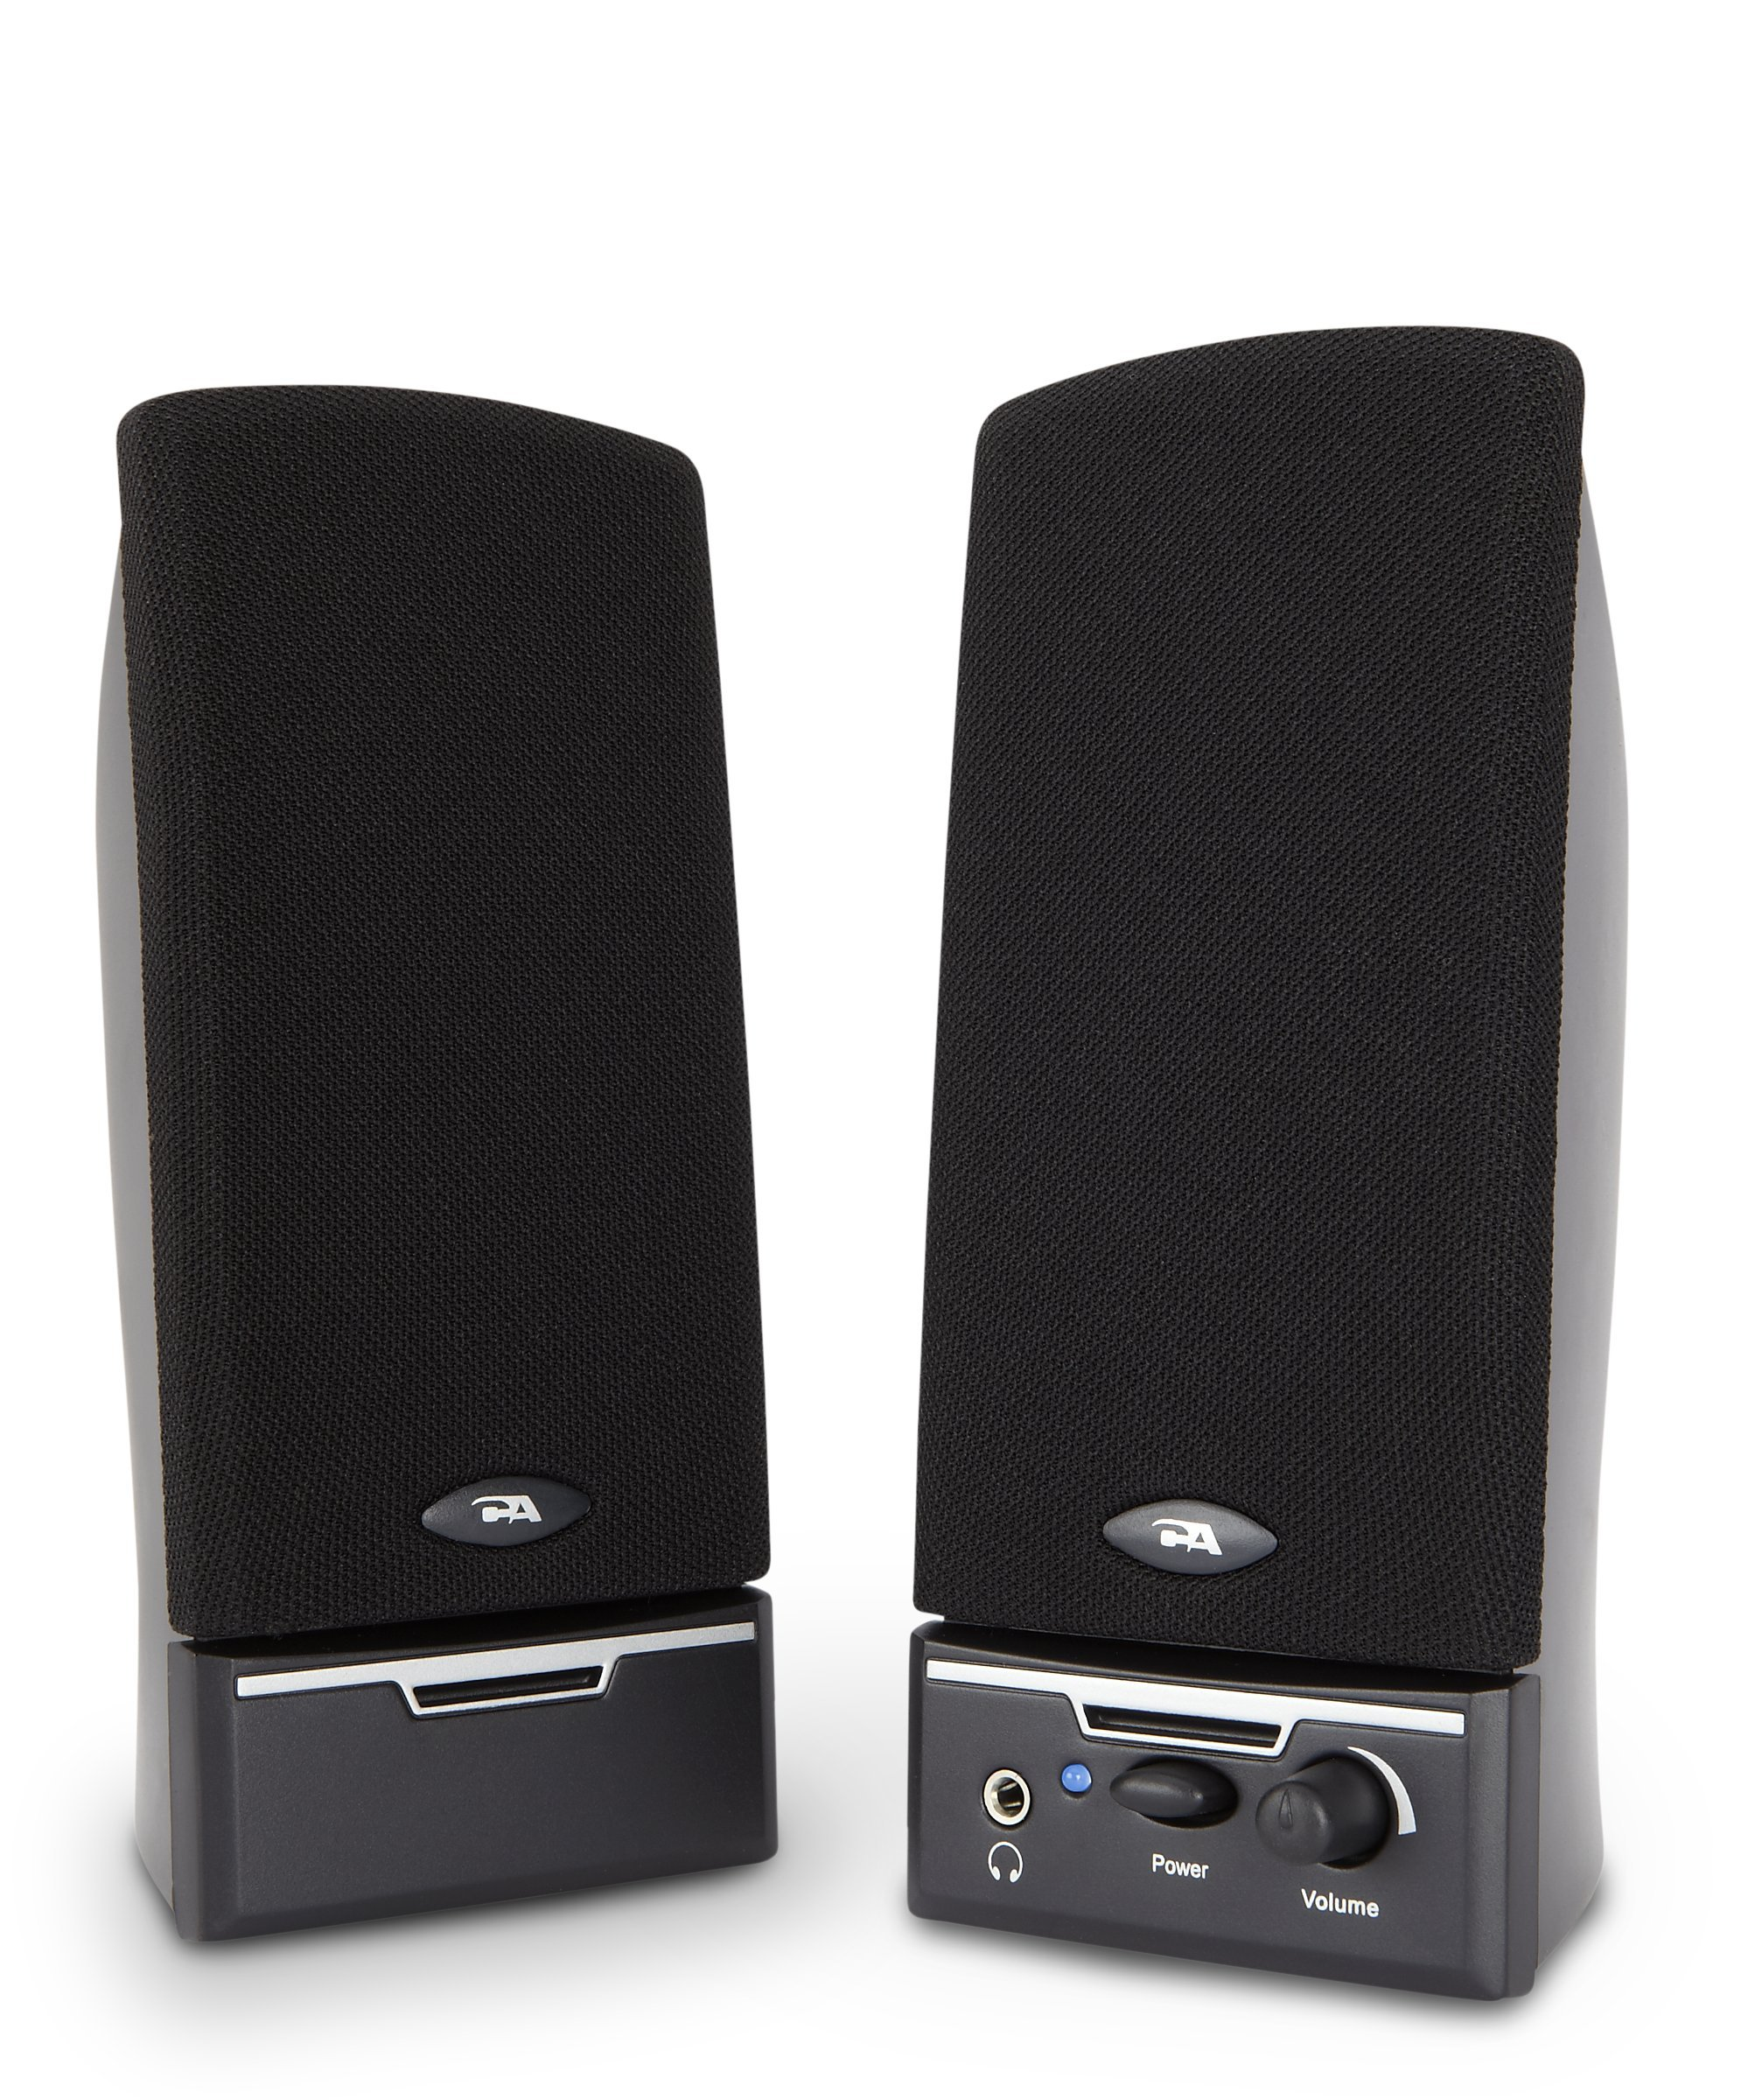 Cyber Acoustics 2.0 Amplified Speaker System Delivering Quality Audio (CA-2014WB) by Cyber Acoustics (Image #1)